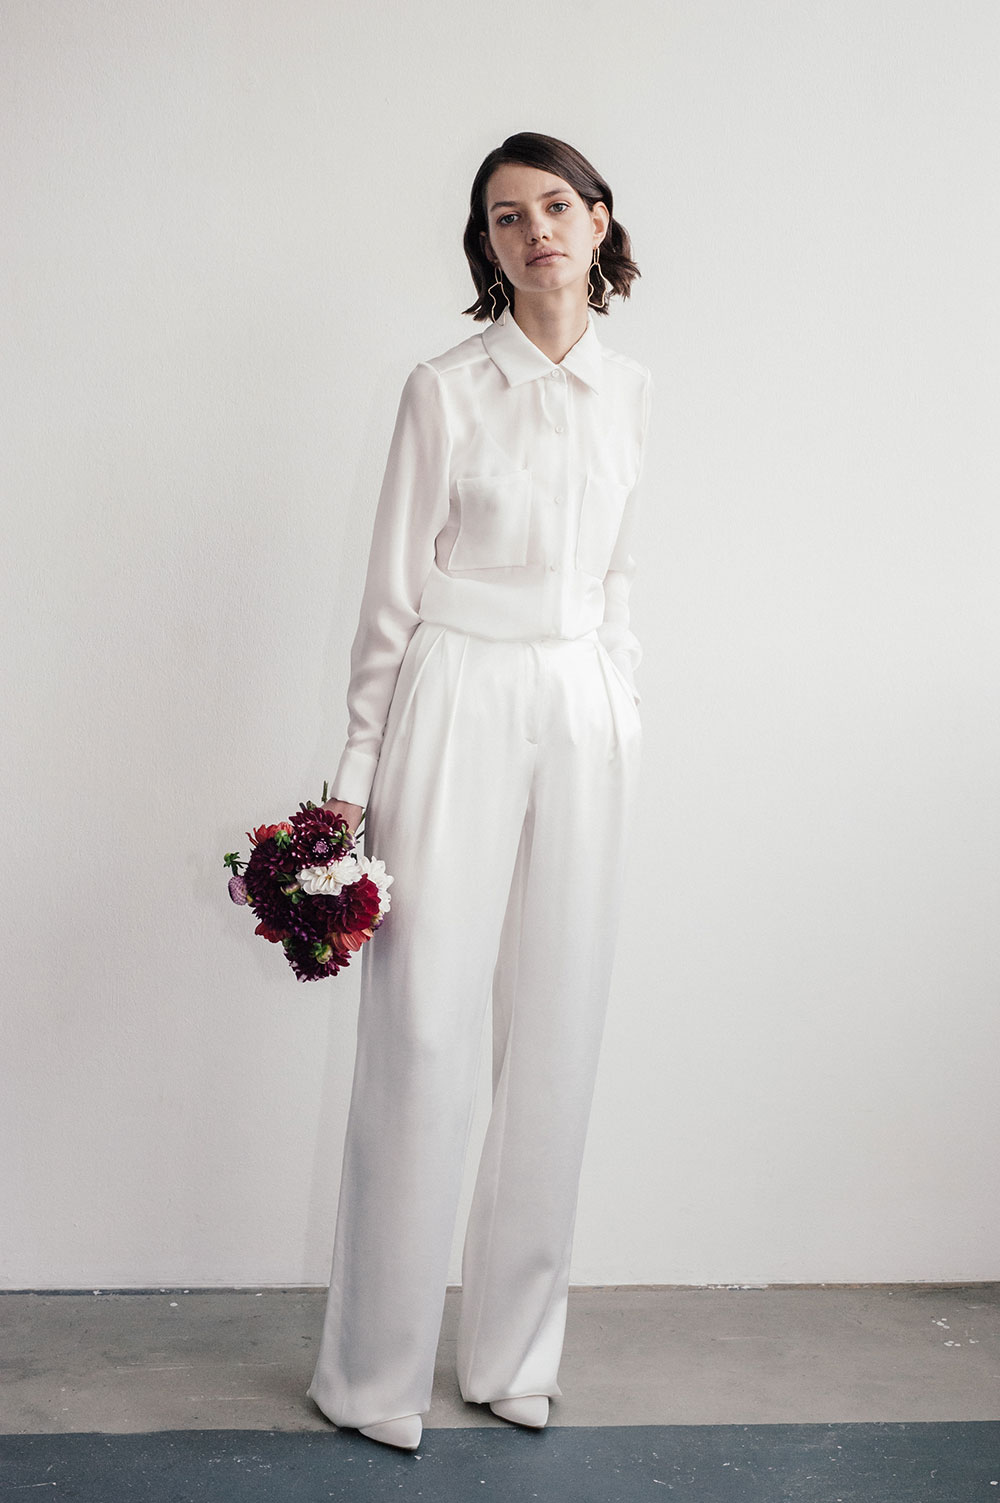 Lilly Ingenhoven Bridal  Civil Ceremony collection -  Henriette  trousers